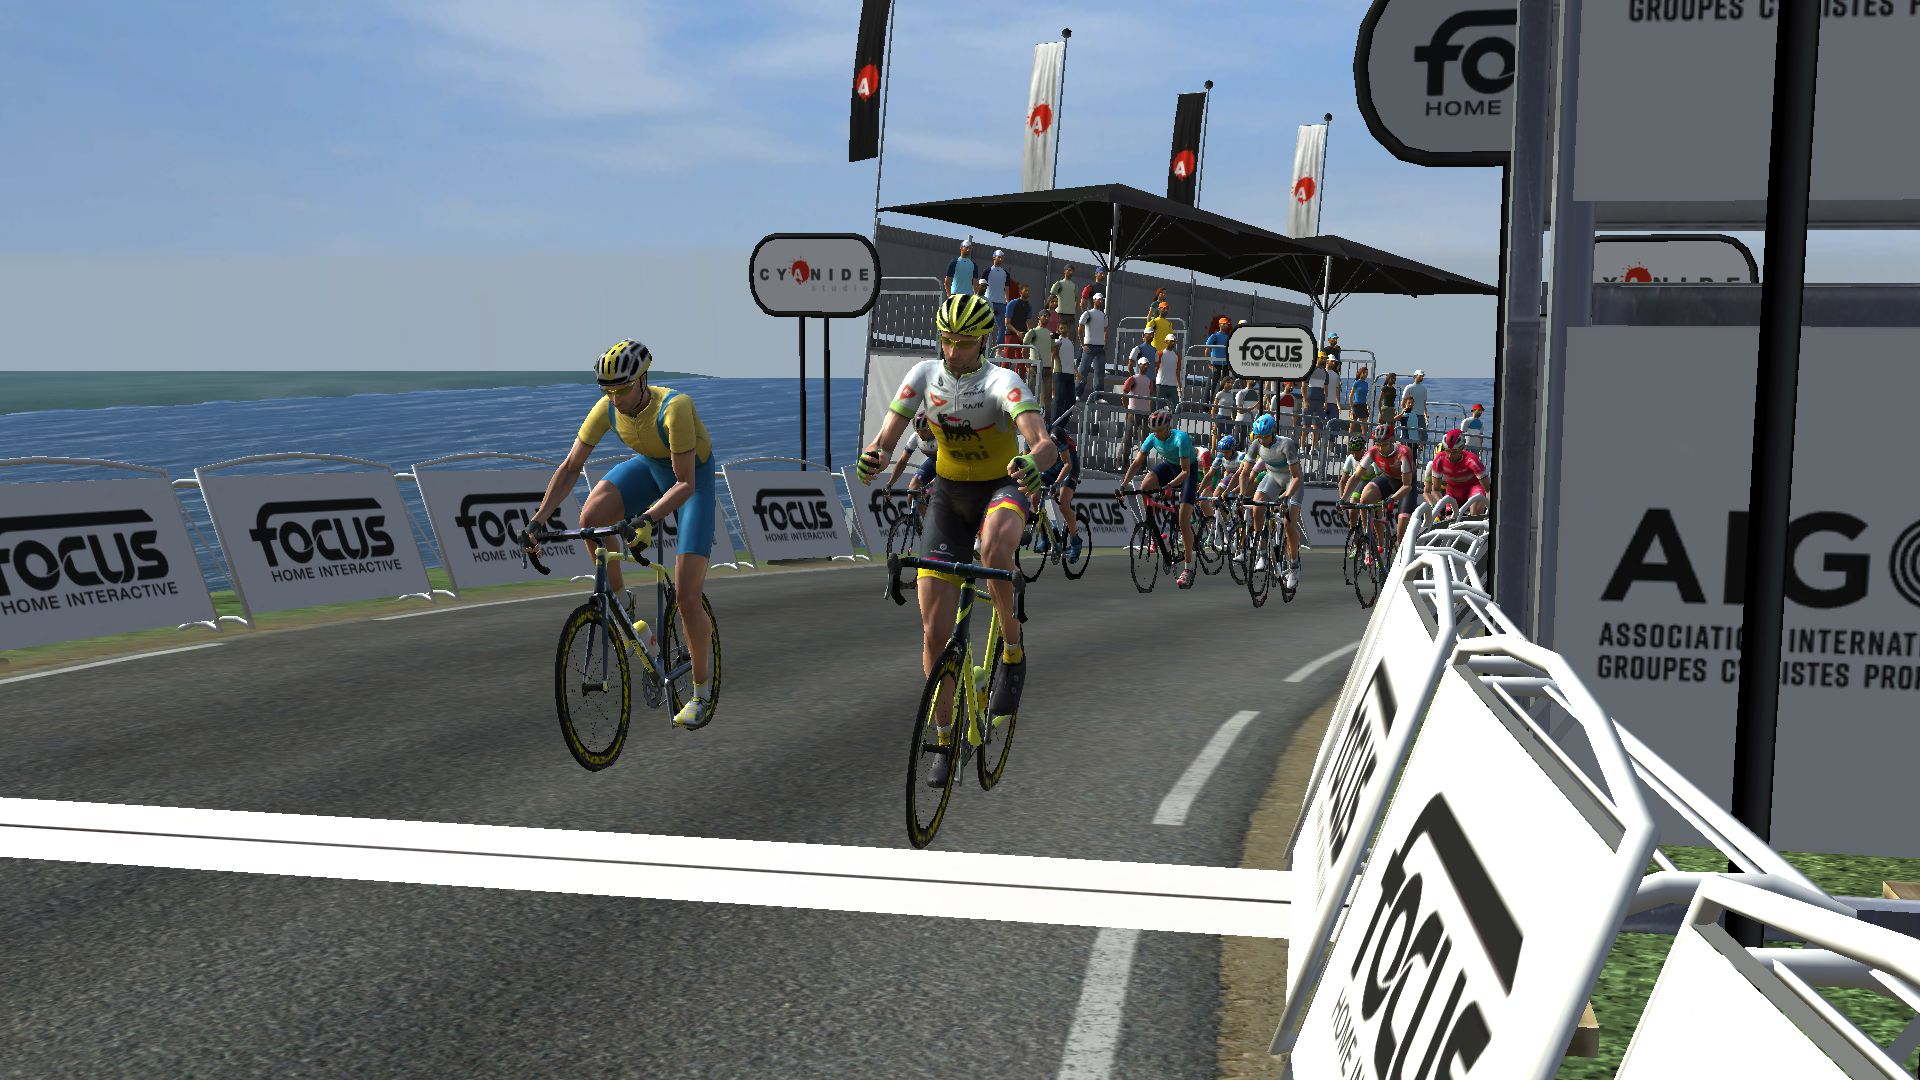 pcmdaily.com/images/mg/2019/Races/C1/Southland/mg19_southland_02_PCM0146.jpg